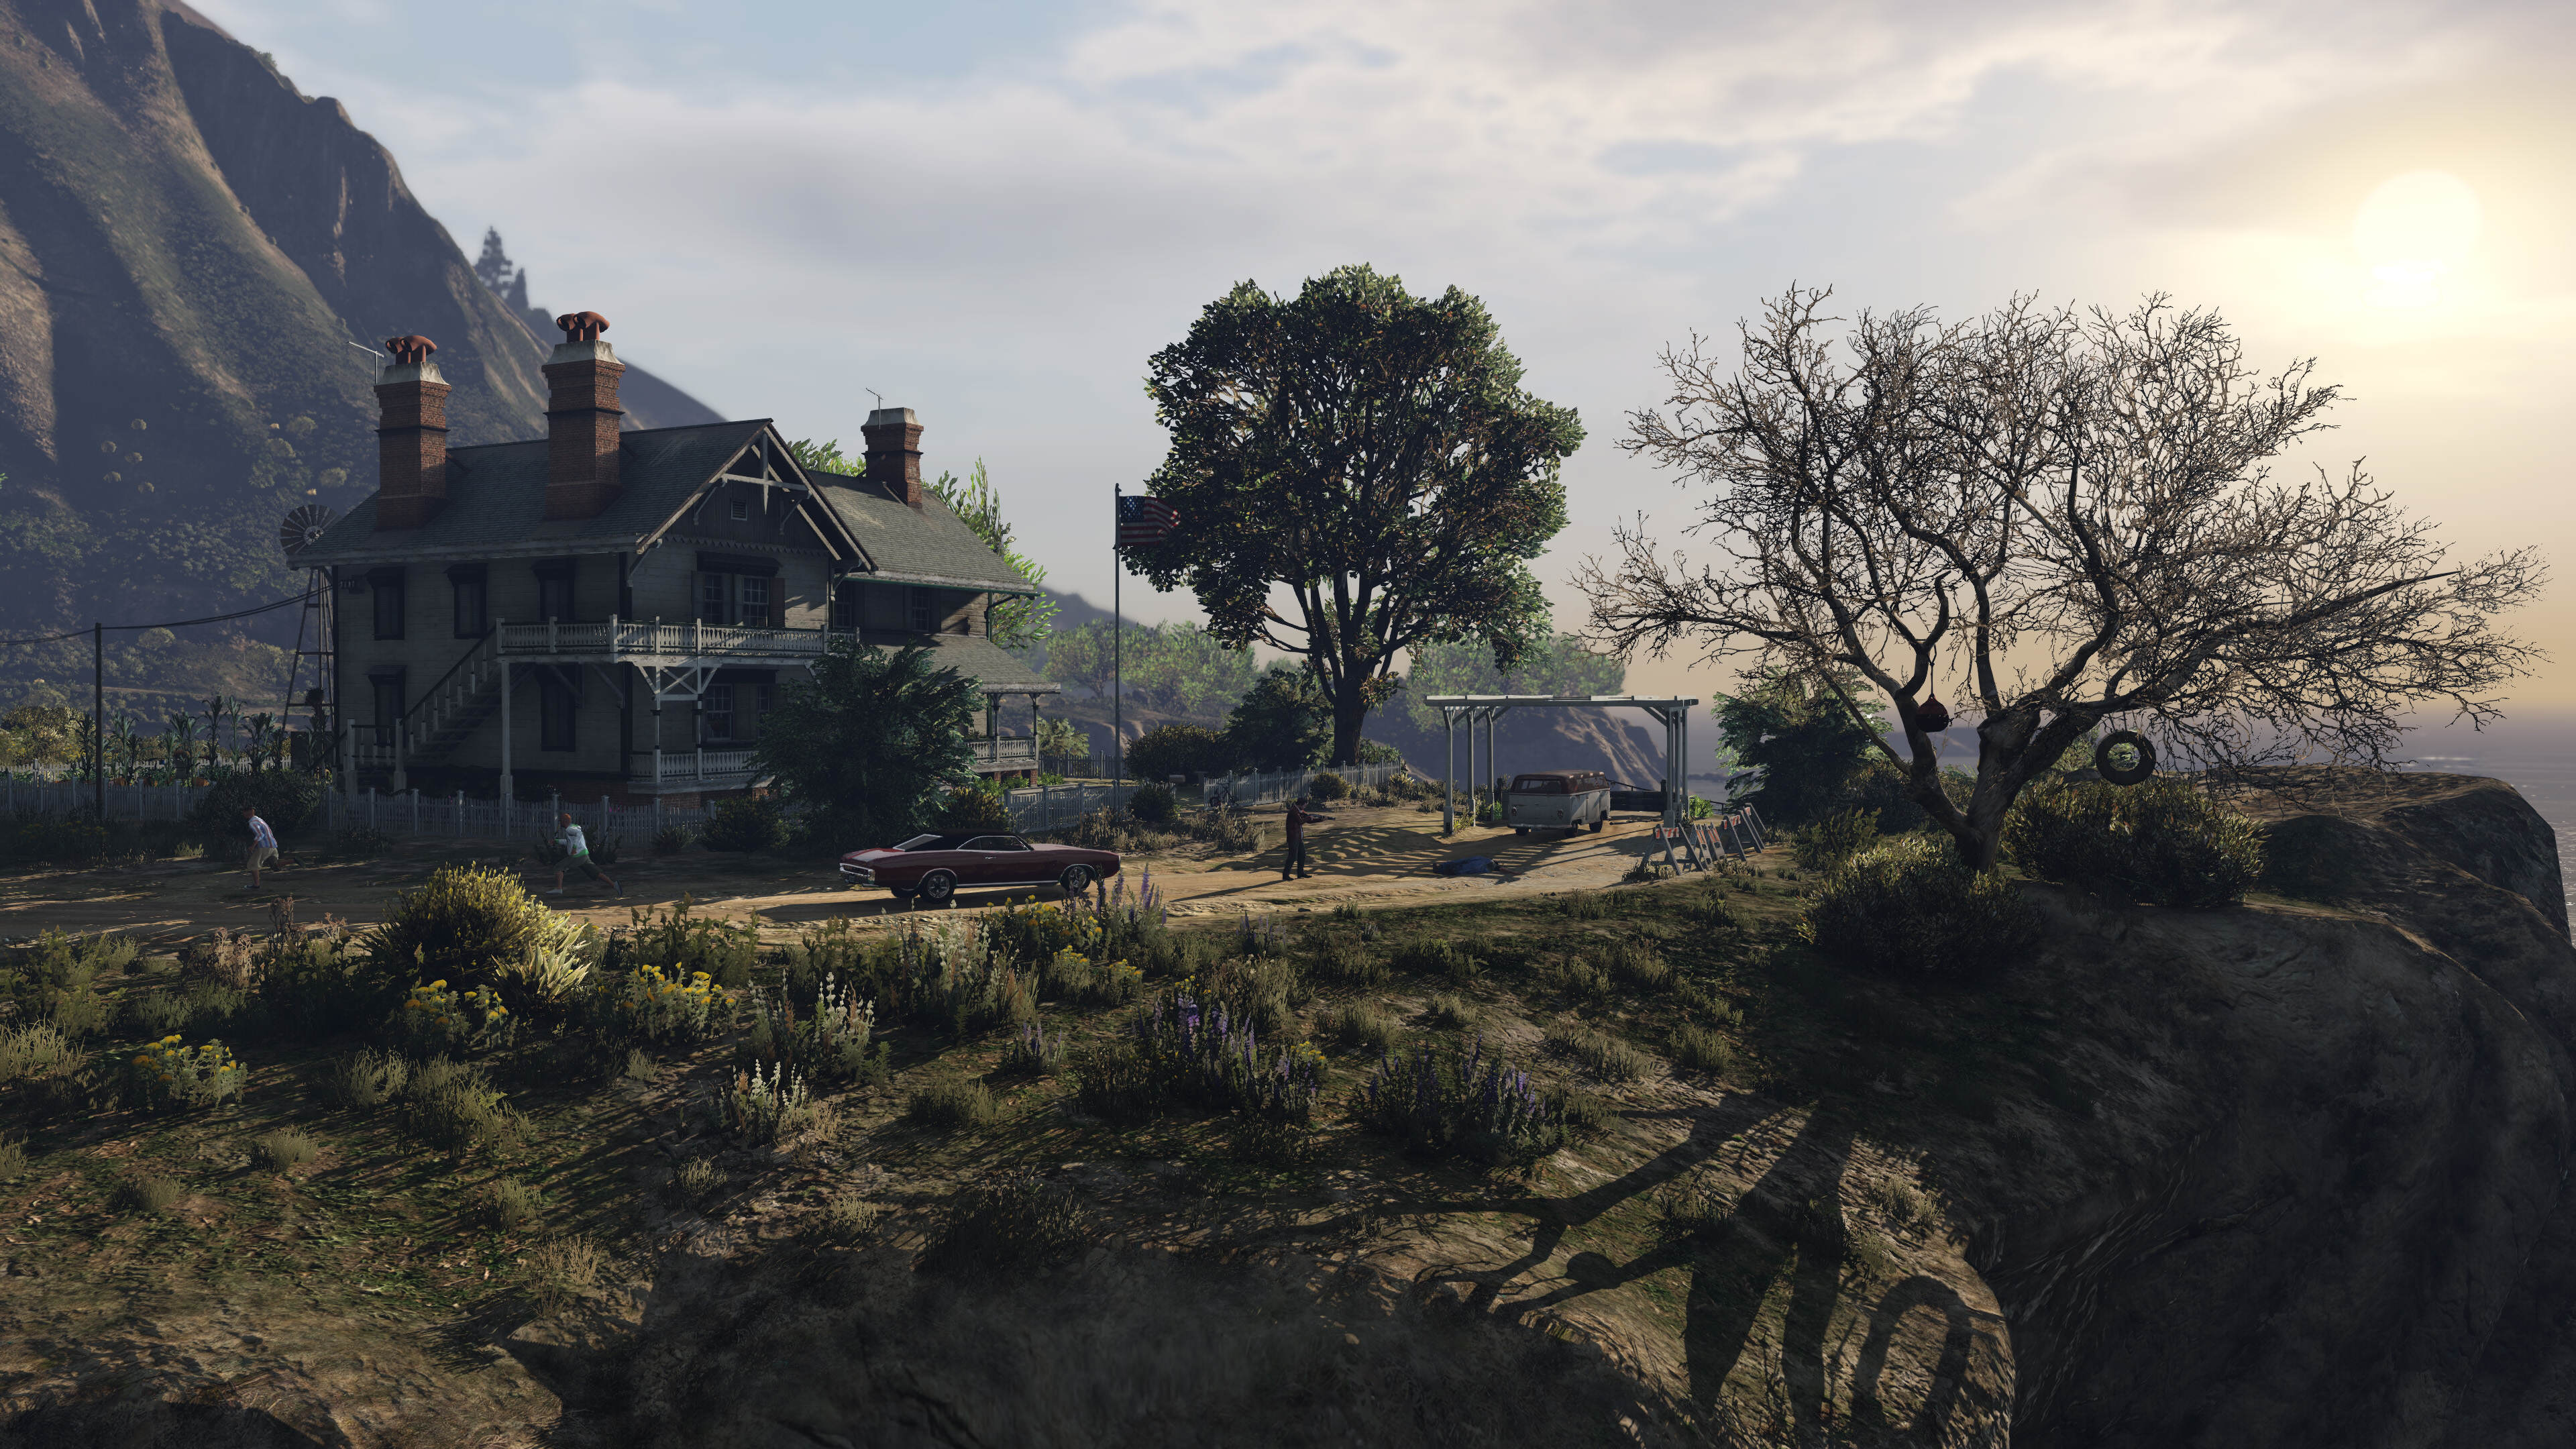 grand theft auto 5s latest pc screenshots sure are a looker 142748242711 Rockstar Release Much Anticipated Grand Theft Auto V PC Screenshots